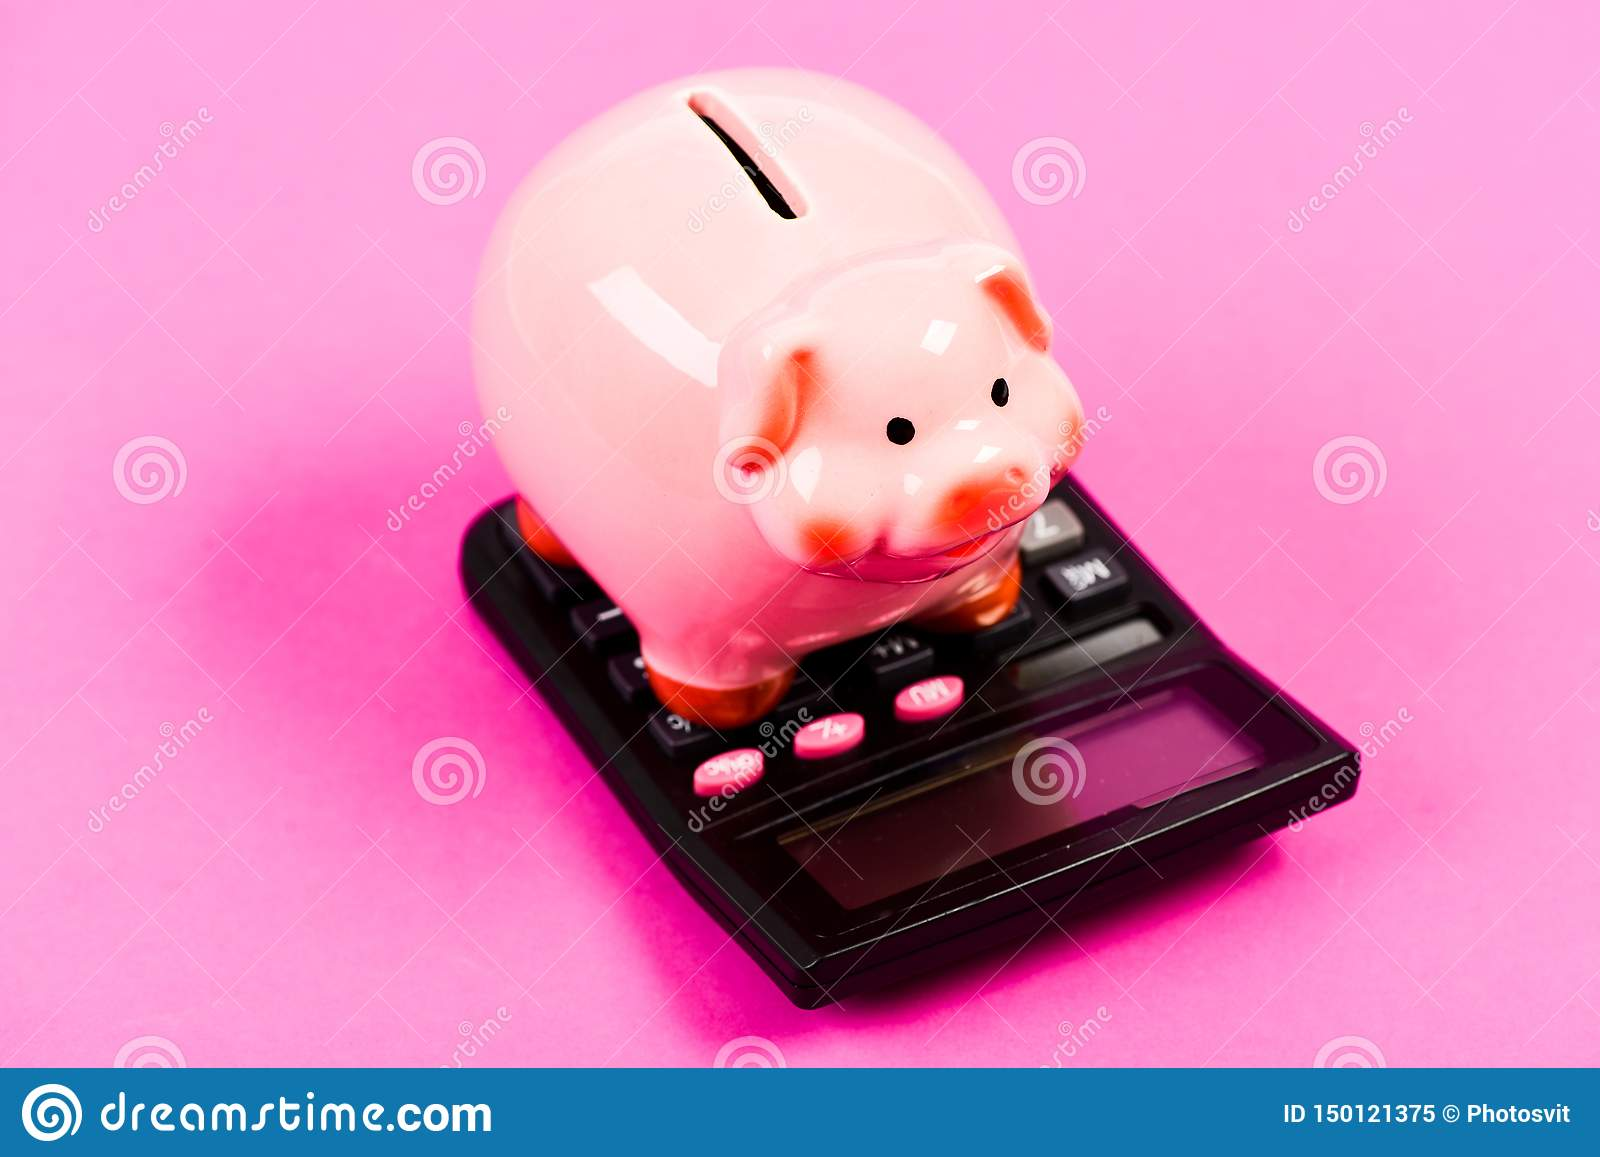 Taxes and charges may vary. Accounting business. Pay taxes. Taxes and fees concept. Tax savings. Piggy bank money